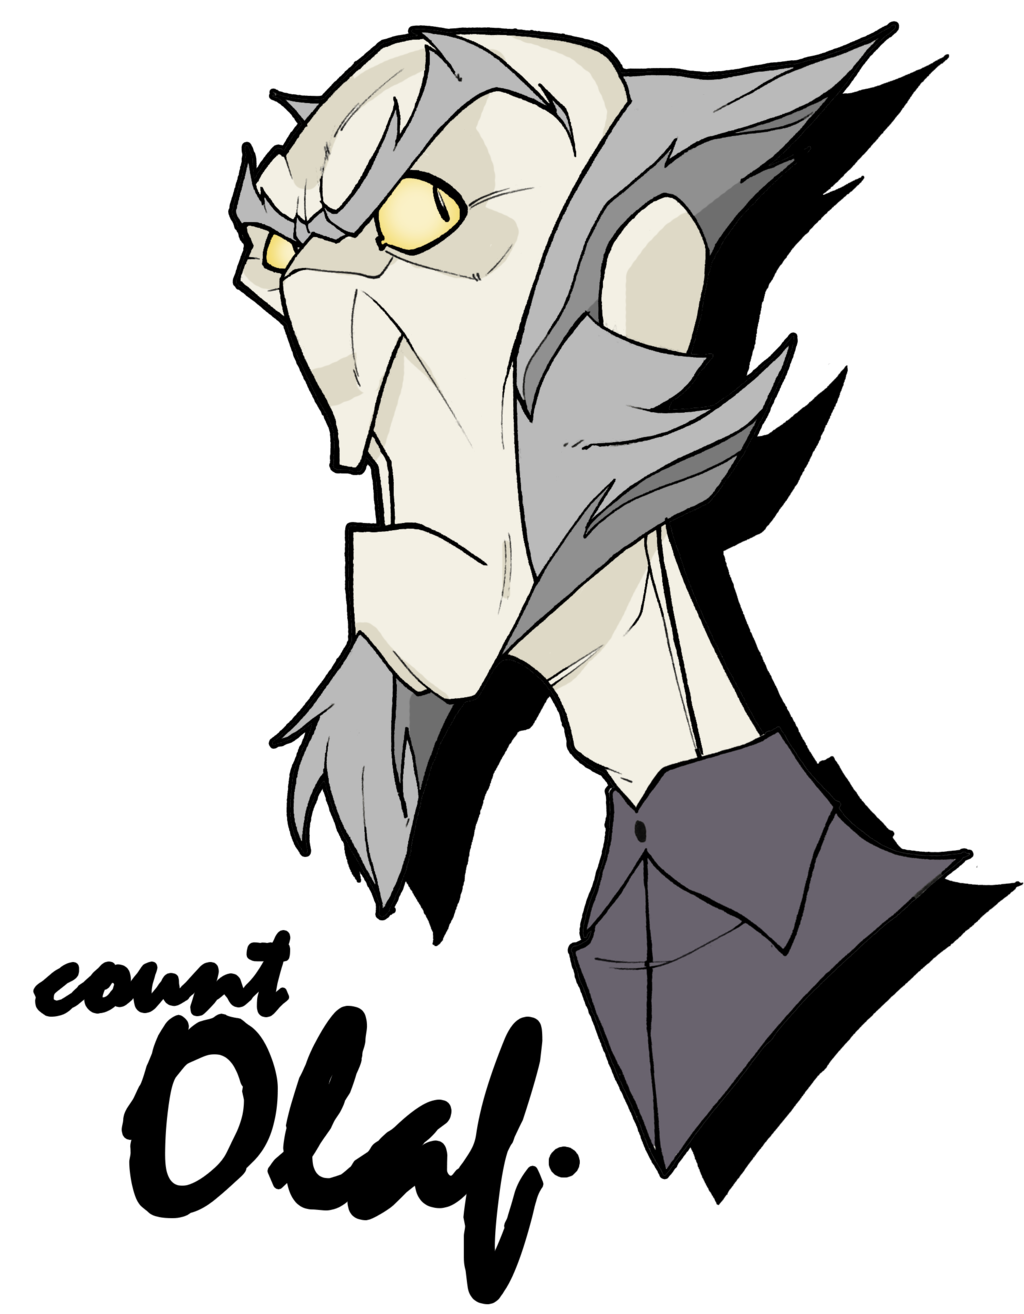 freeuse library Count Olaf by MrGreenlight on DeviantArt